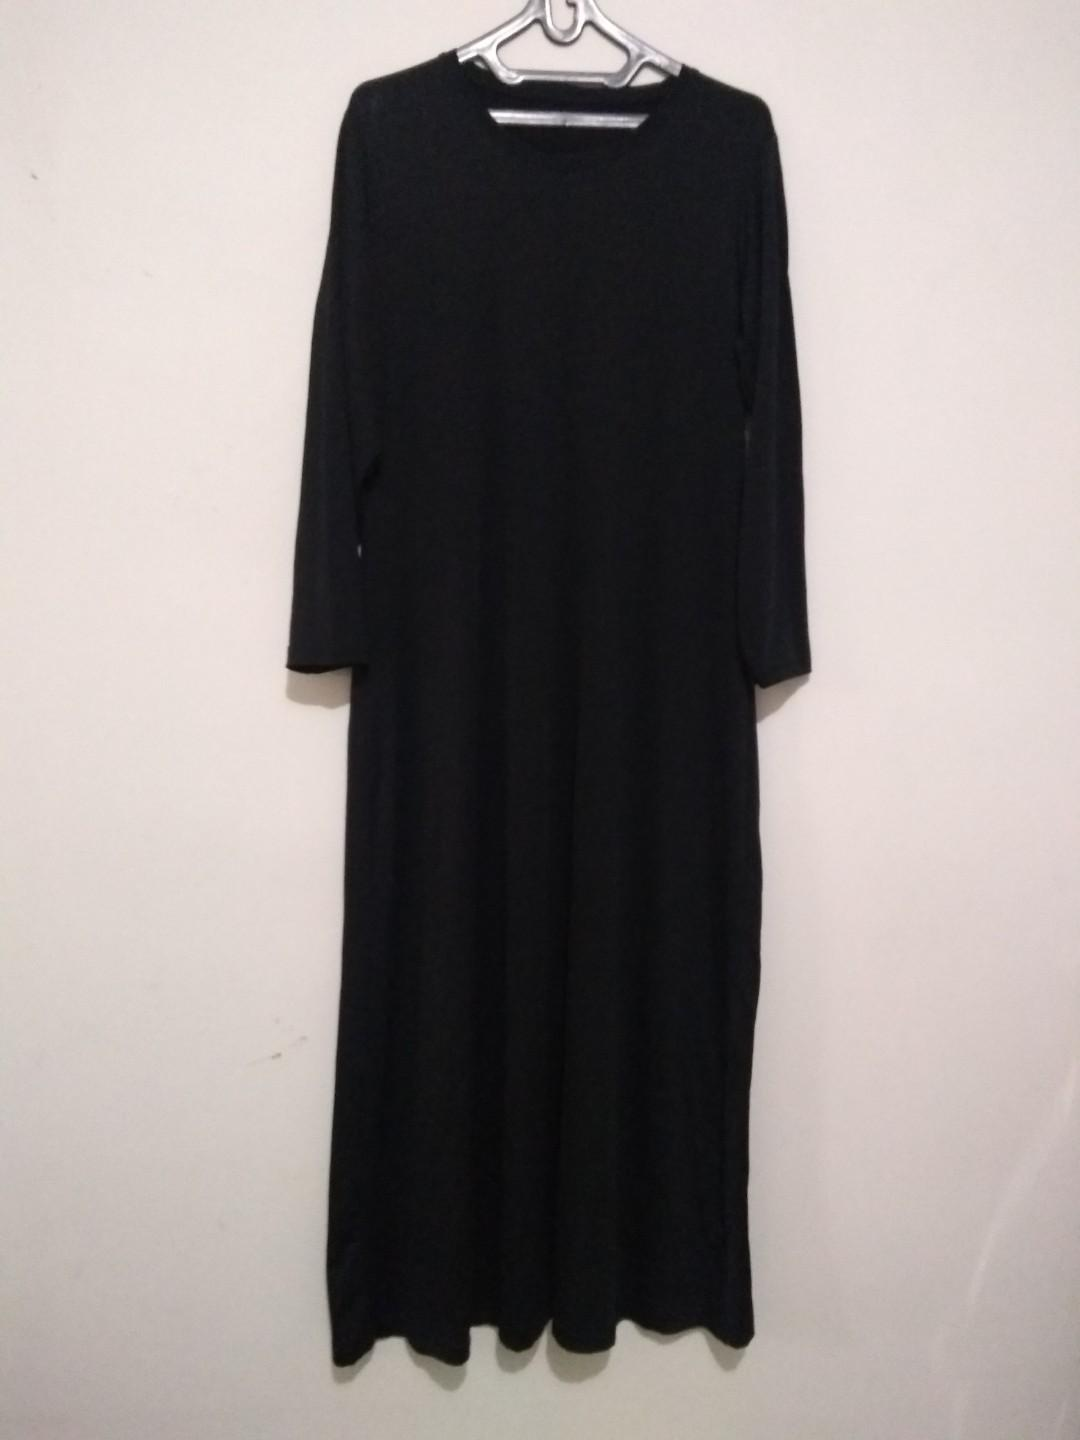 gamis inner jersey